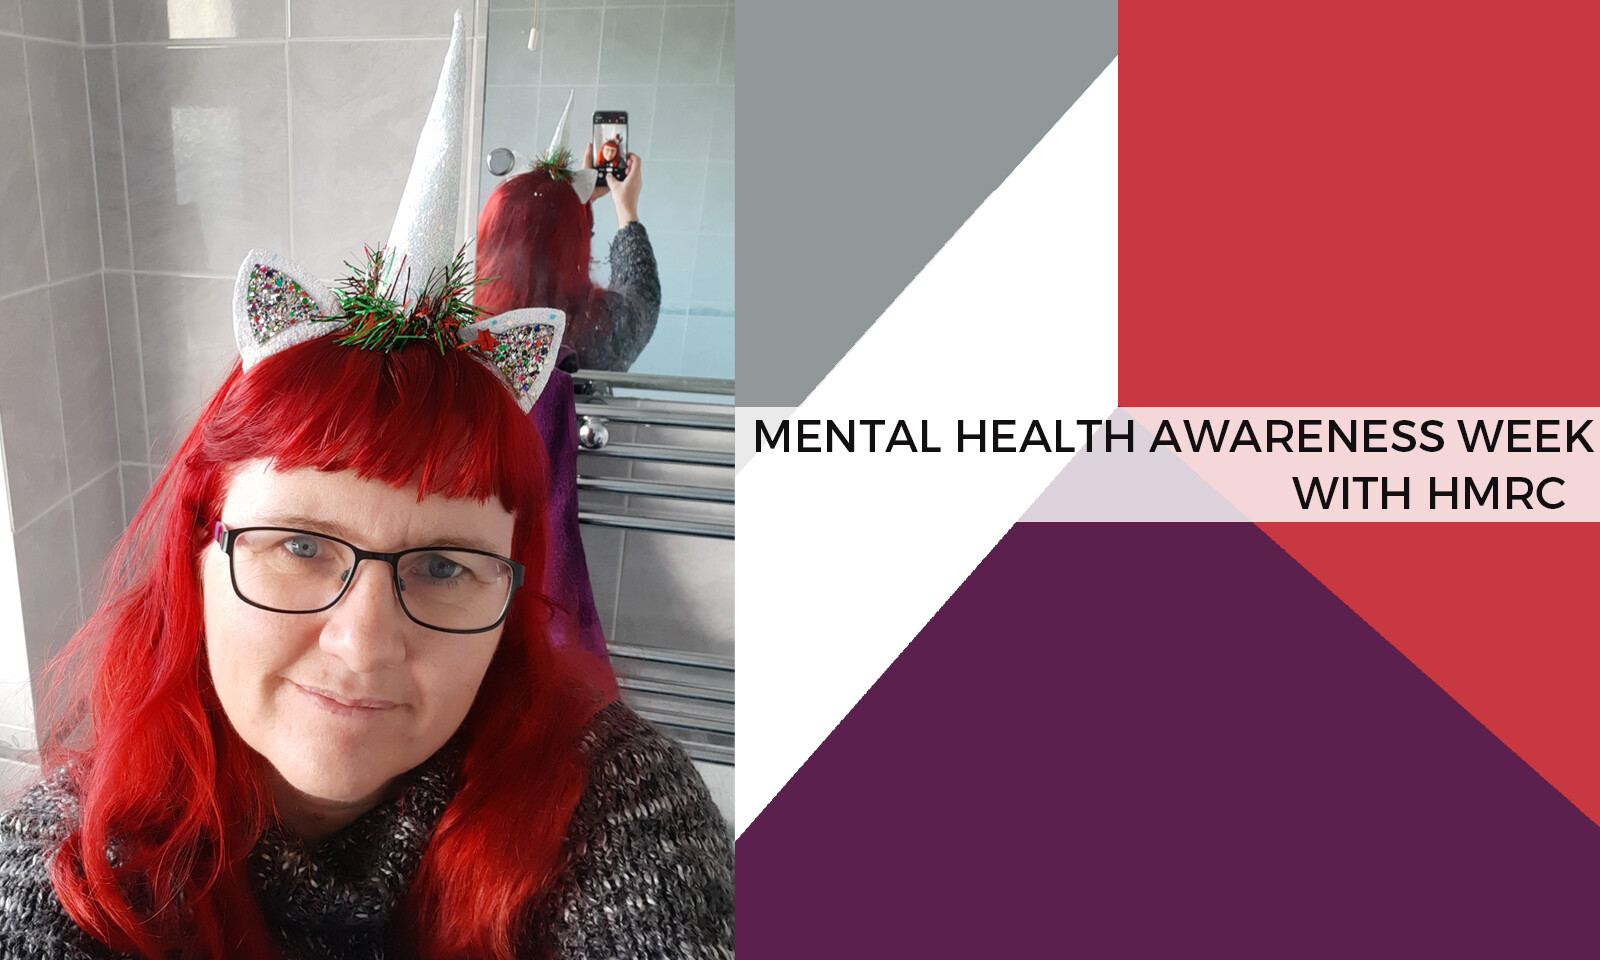 Mental health awareness week with HMRC: Emma Jones